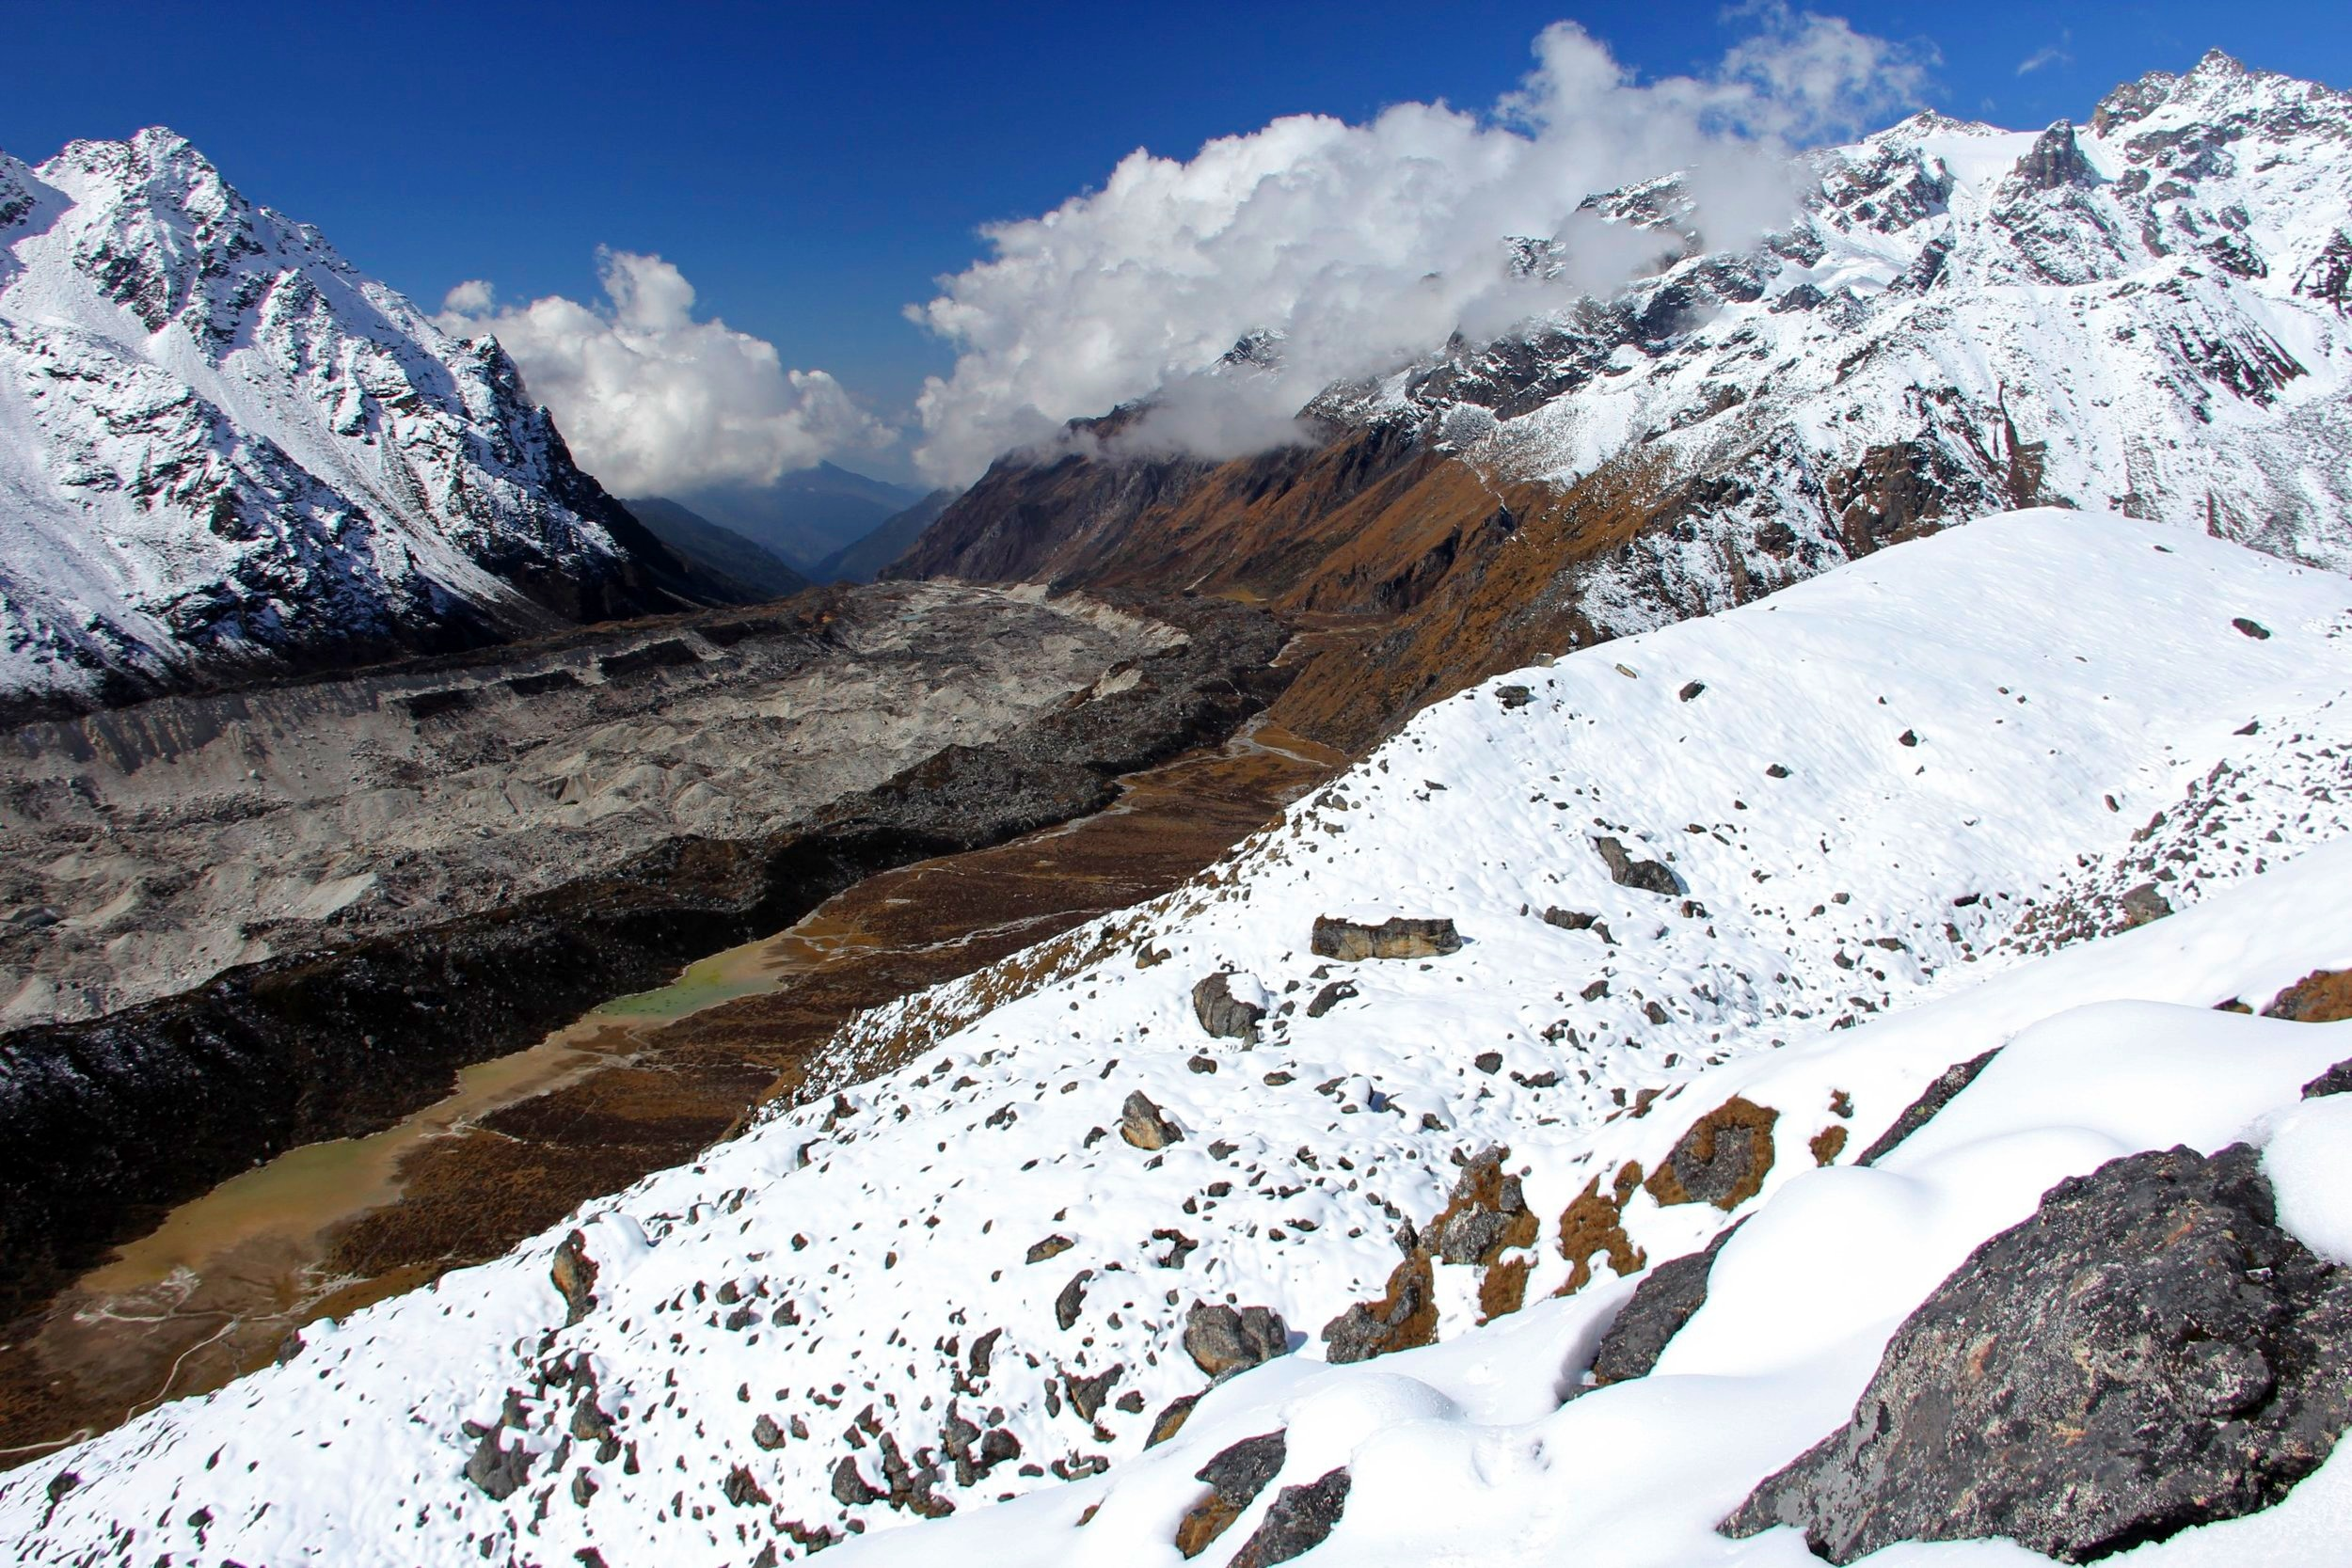 Hiking above the base camp to above 5,000m. Yalung Glacier and view to the south.